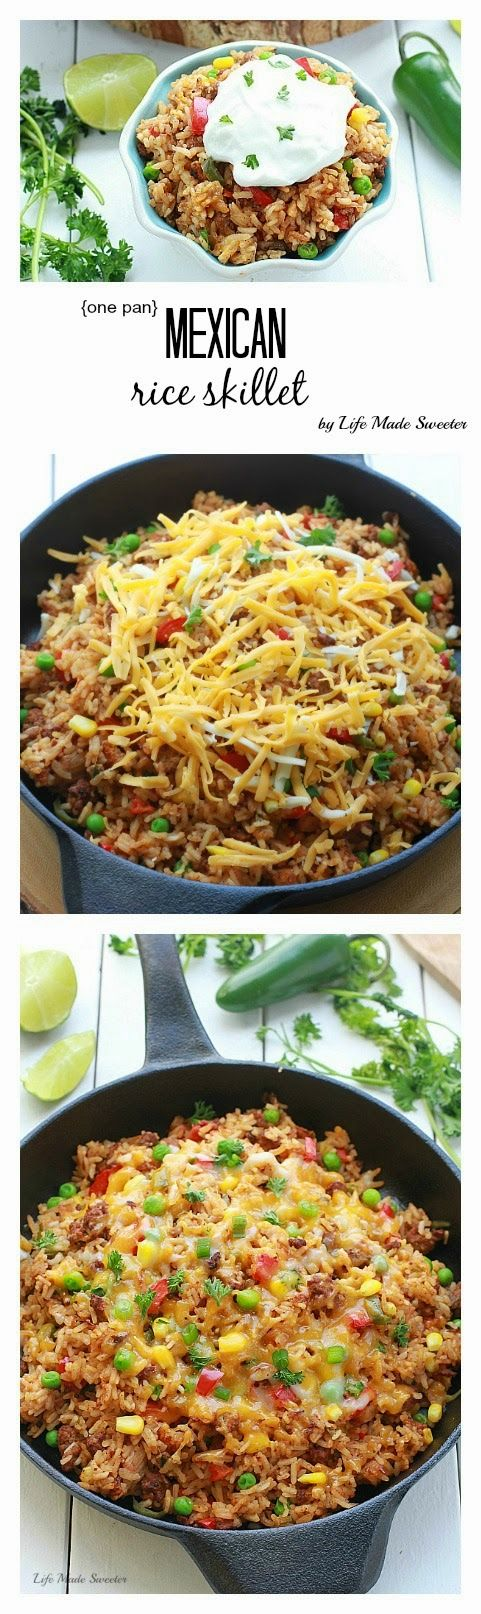 30 Minute Meal Recipe - Easy Mexican rice dish made all in one pan in just 25 minutes.